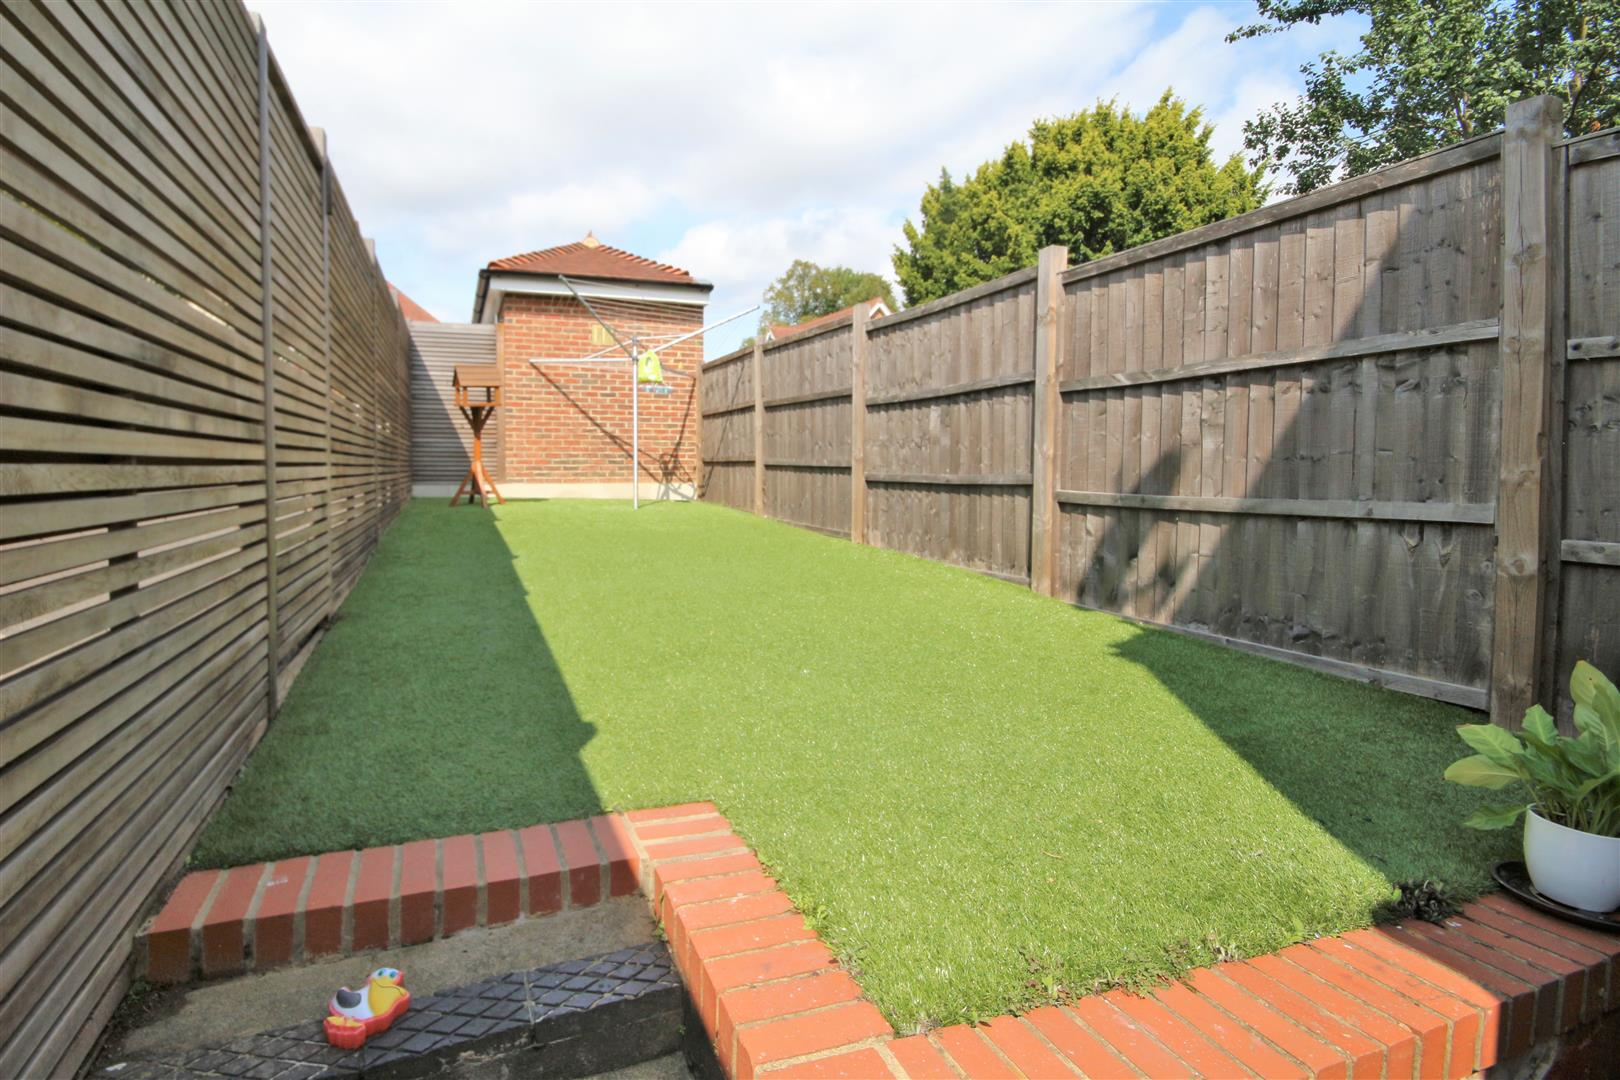 2 bed to rent - (Property Image 6)